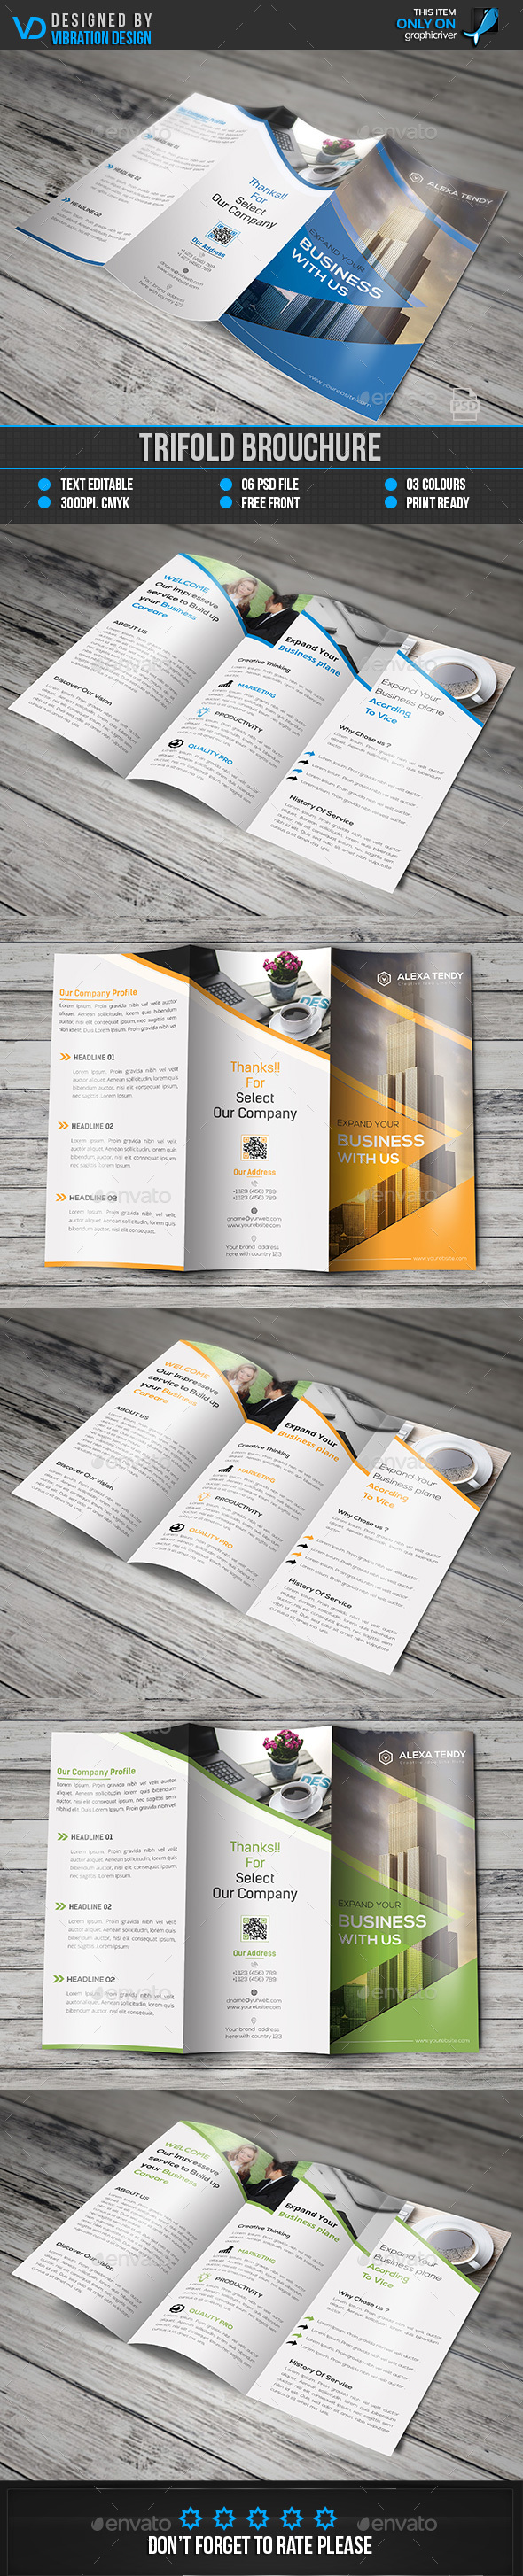 Creative Corporate Trifold Brochure Template PSD. Download here ...